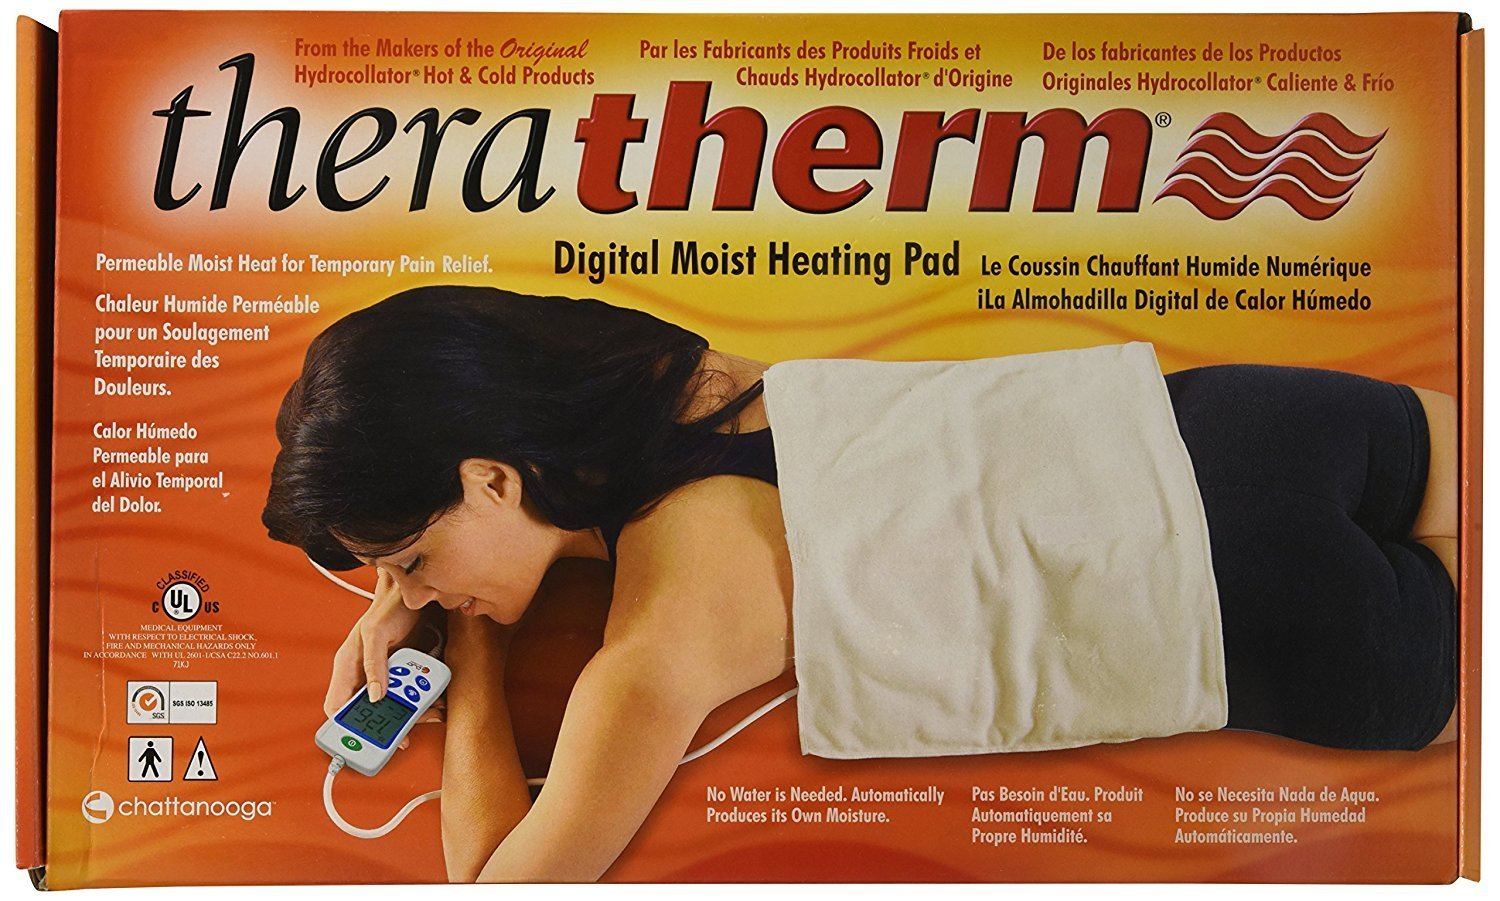 Chattanooga Theratherm Automatic Moist Heat Pack - Standard by Chattanooga